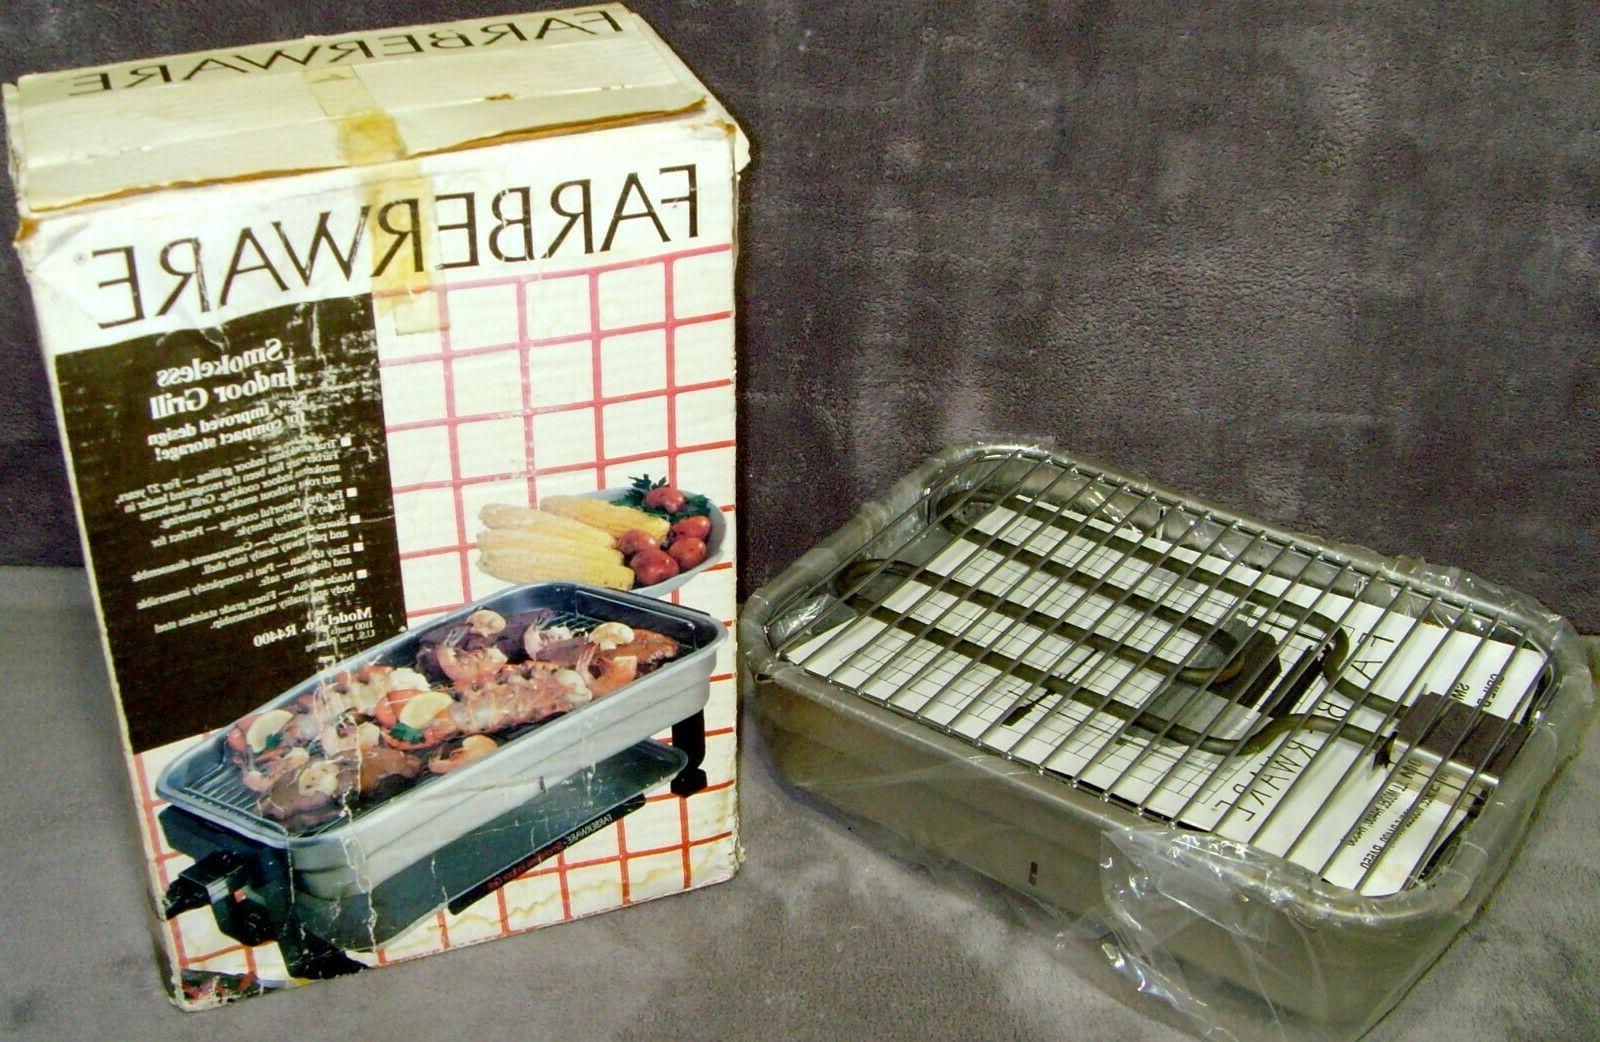 Vintage 1991 n Box Compact Indoor Grill USA